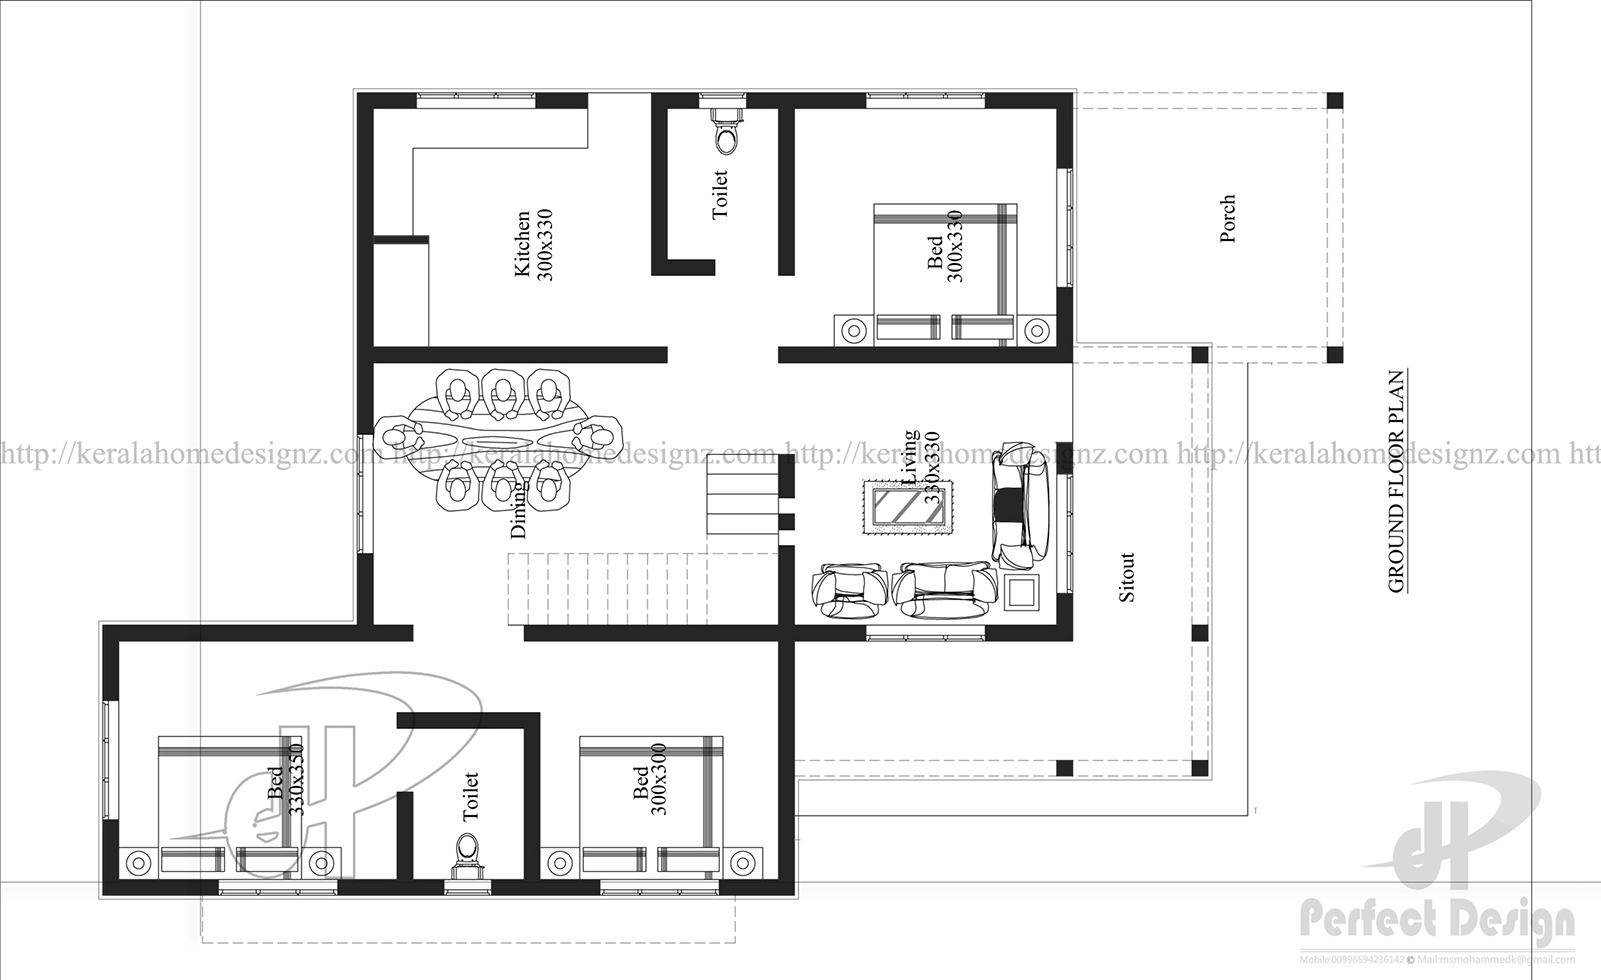 3 bedroom modern flat roof house layout kerala home design for Floor plans for 3 bedroom flats